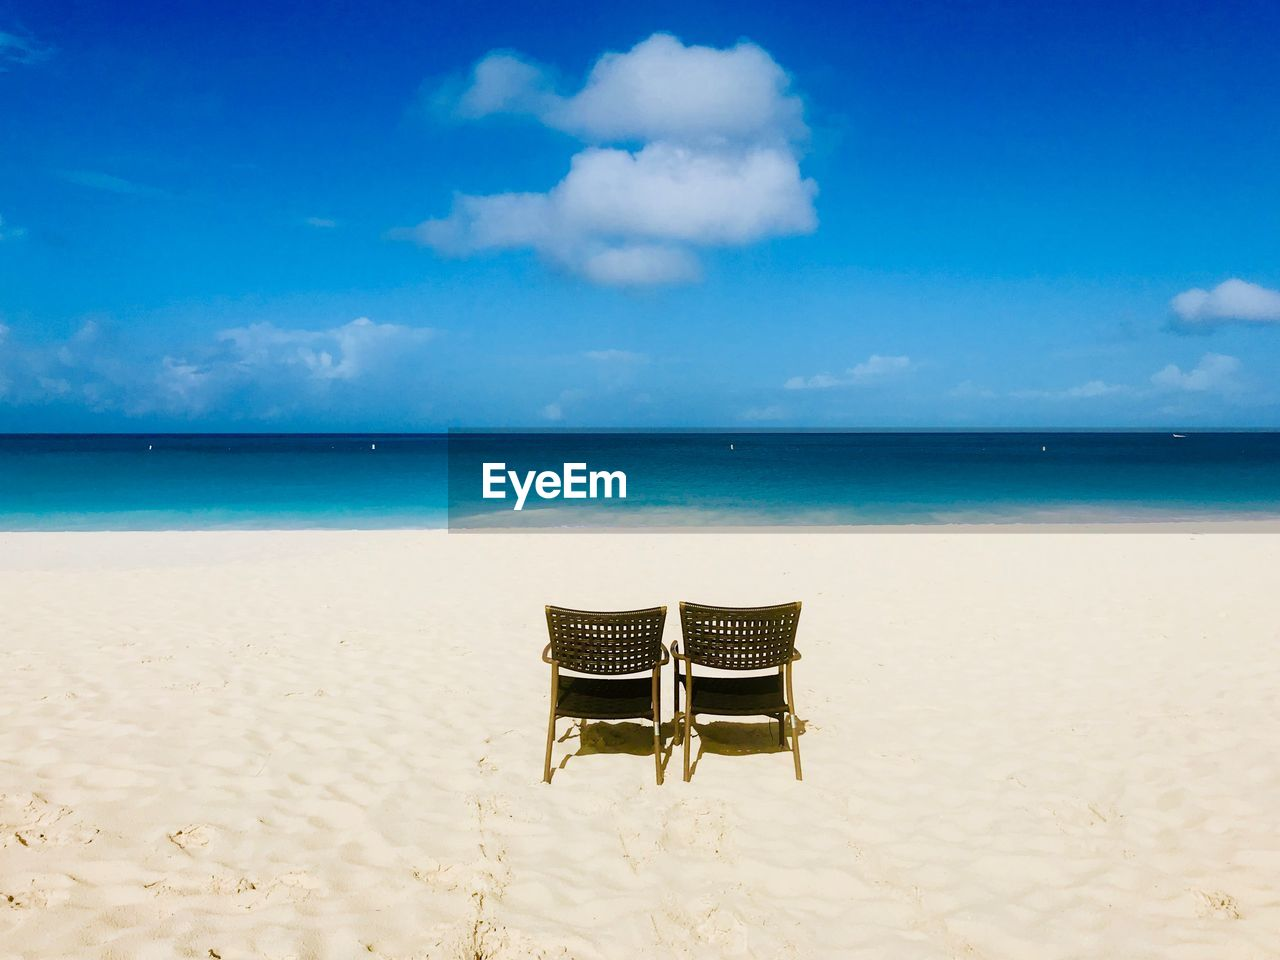 sea, beach, sky, chair, horizon over water, land, water, seat, horizon, tranquility, tranquil scene, absence, beauty in nature, cloud - sky, no people, sand, scenics - nature, nature, empty, outdoors